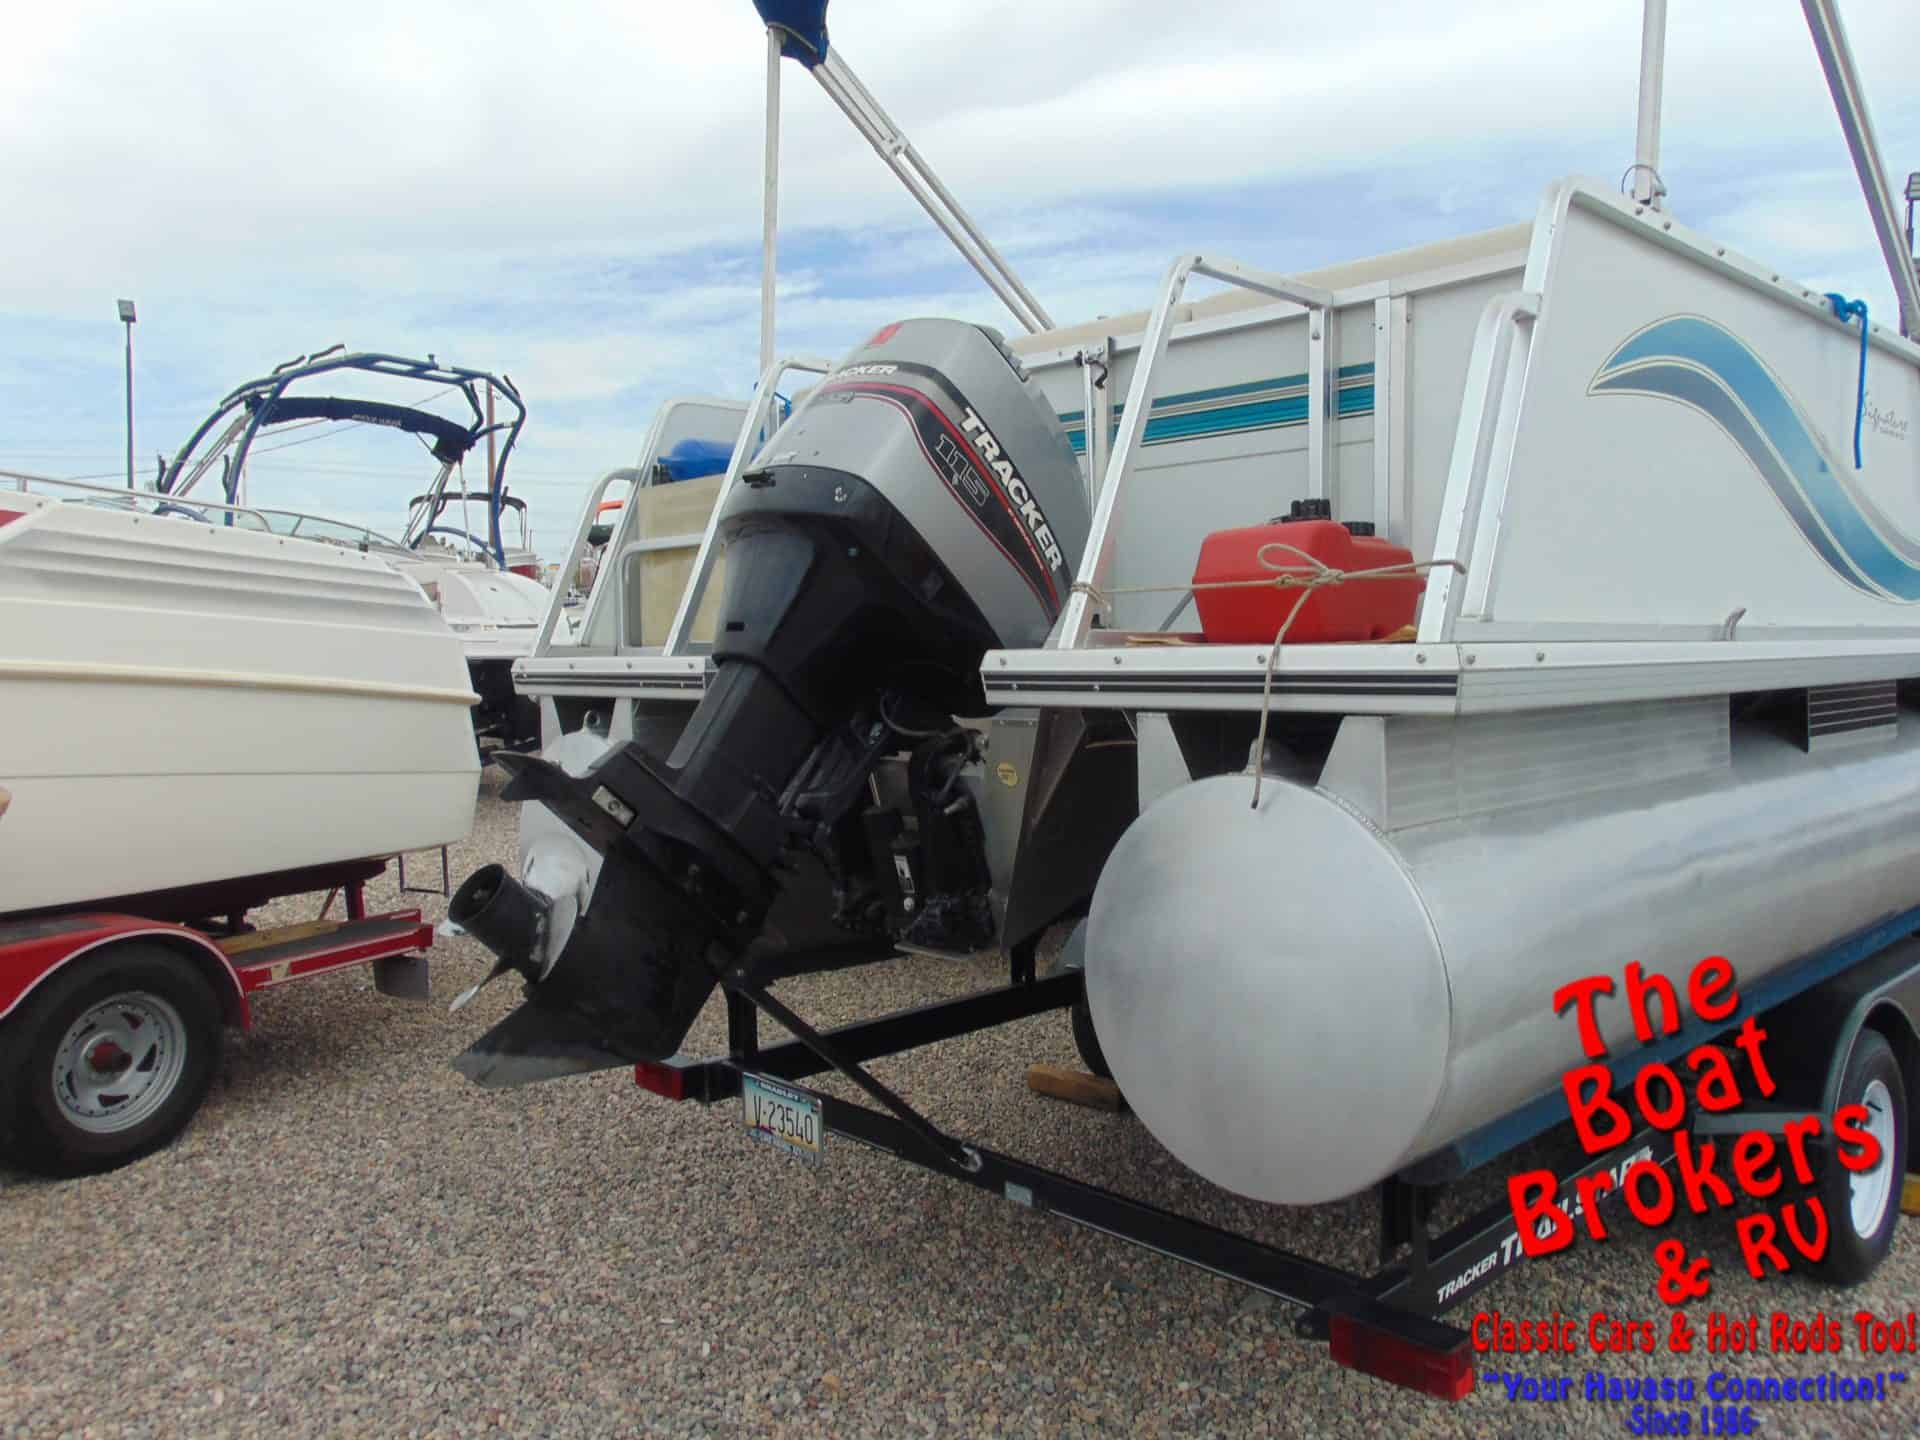 1997 TRACKER PARTY BARGE 25' PONTOON